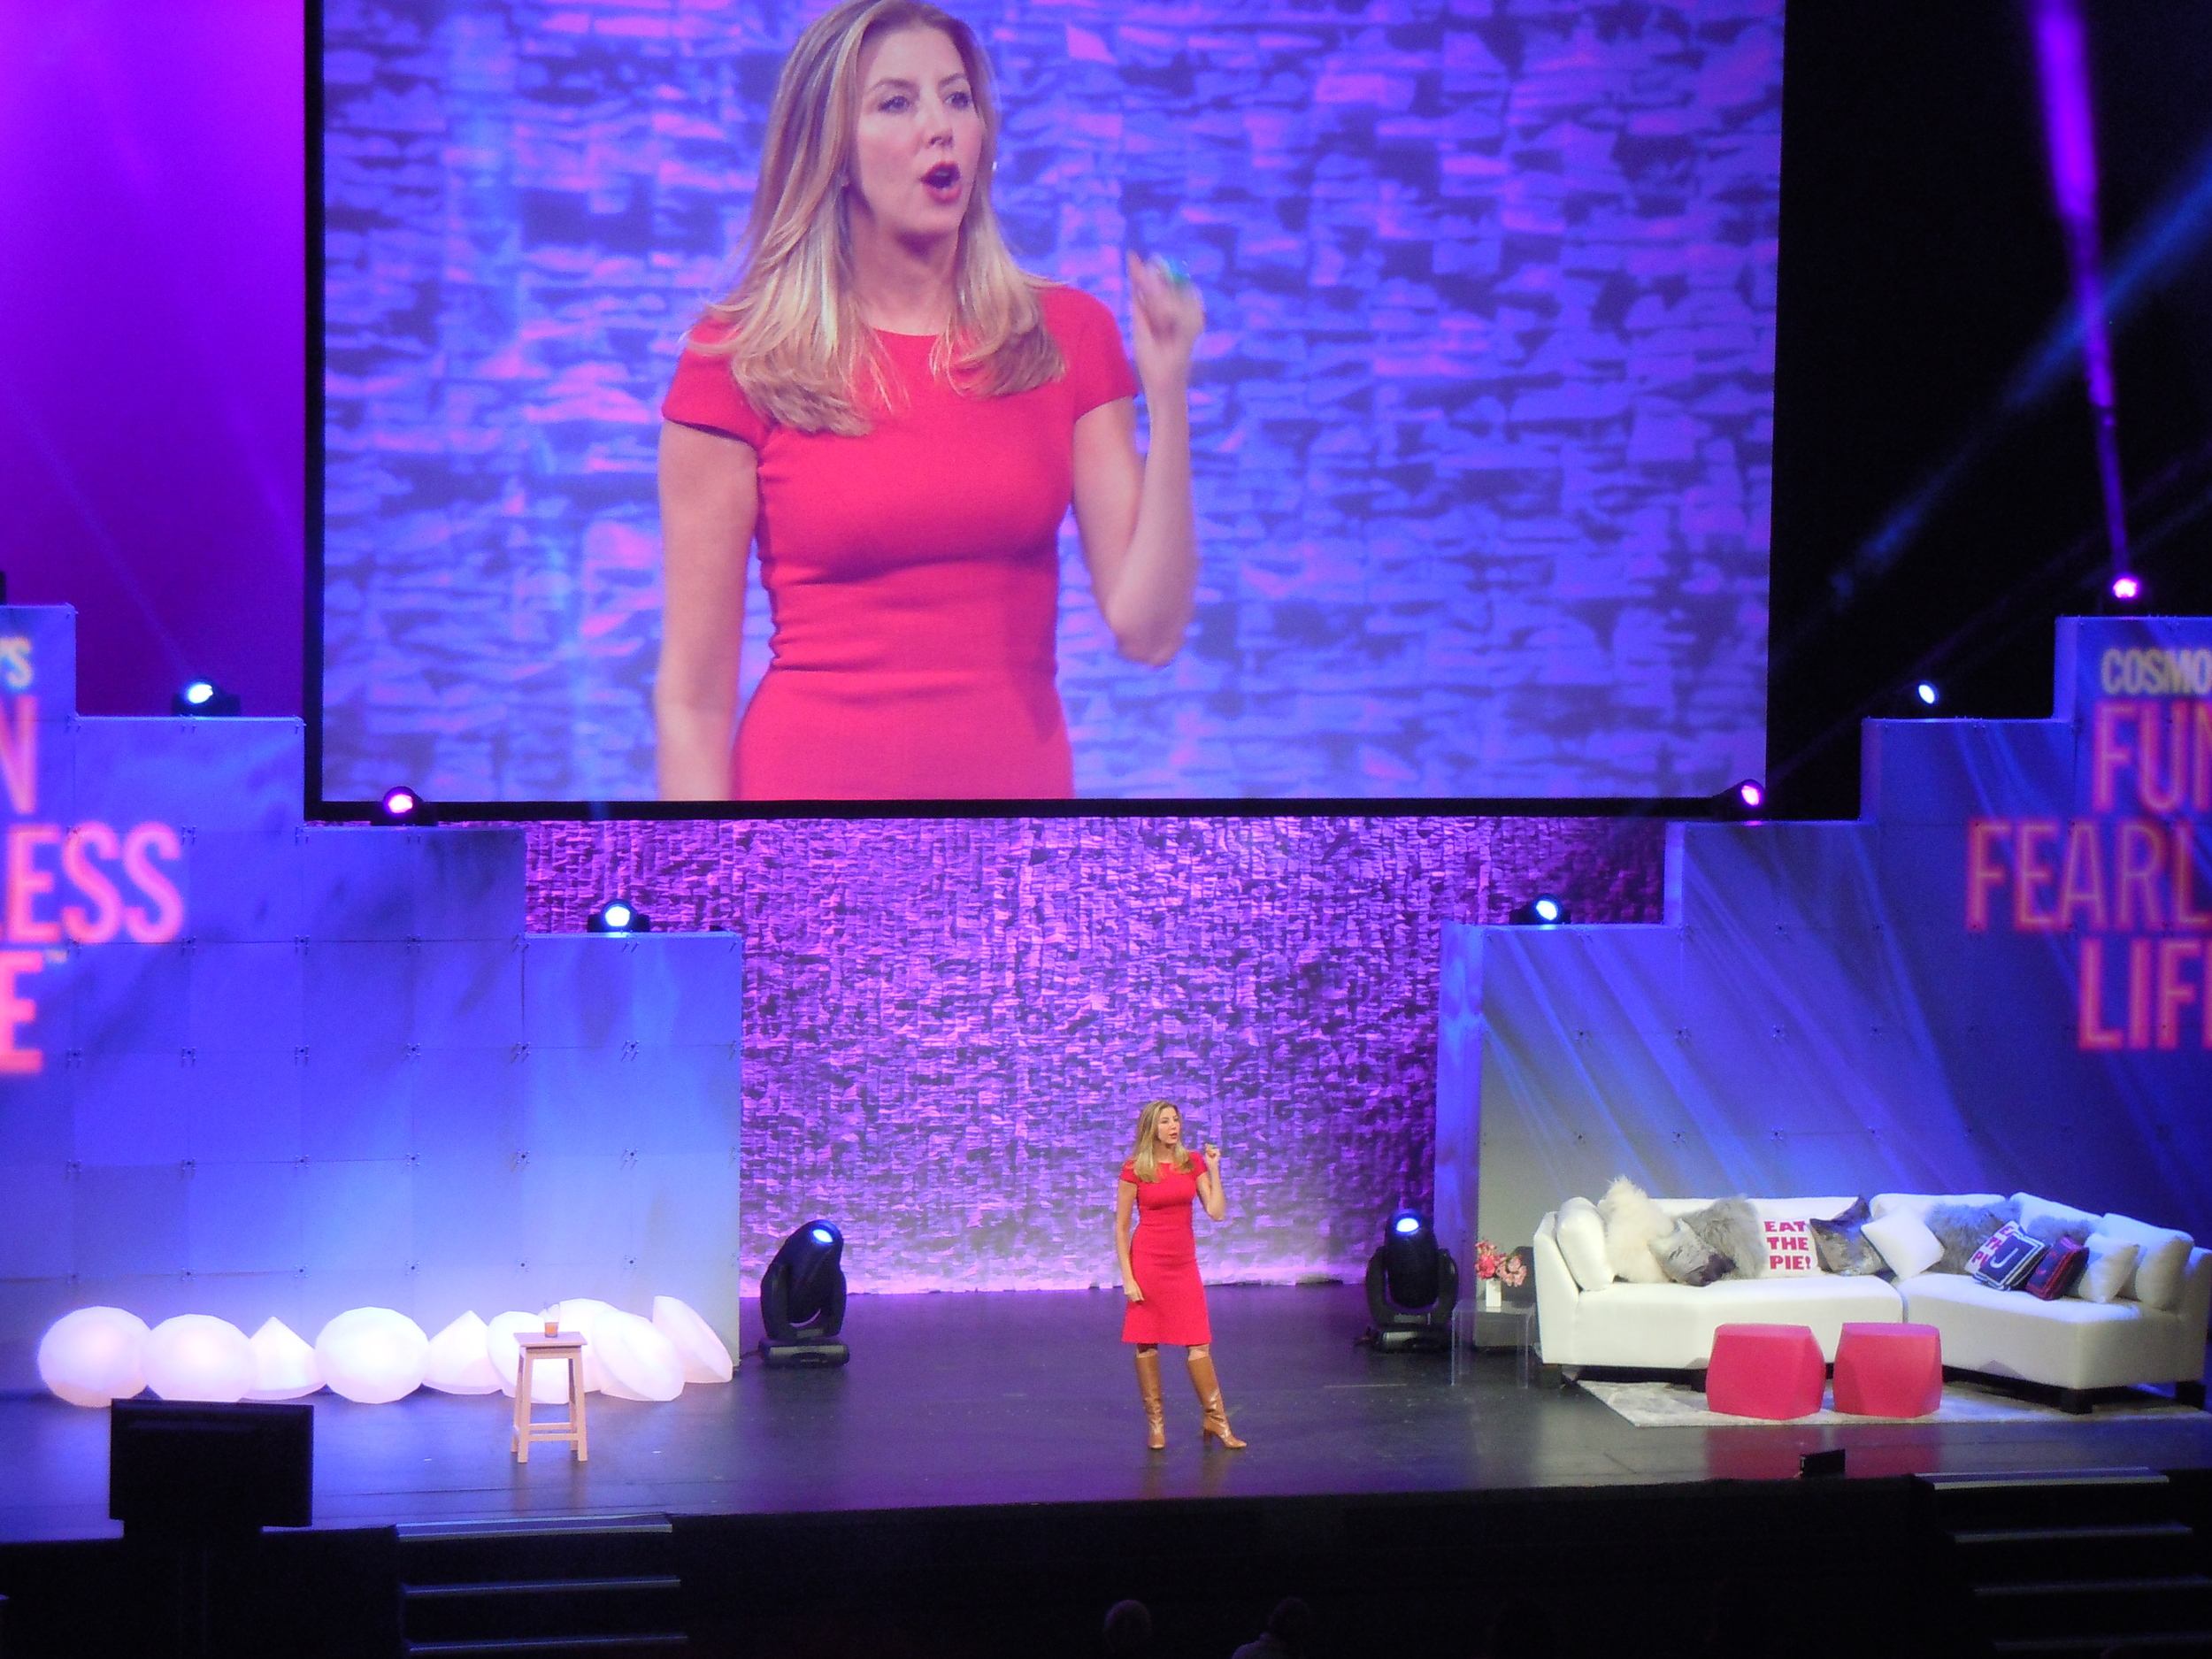 Sara Blakely (founder of Spanx)